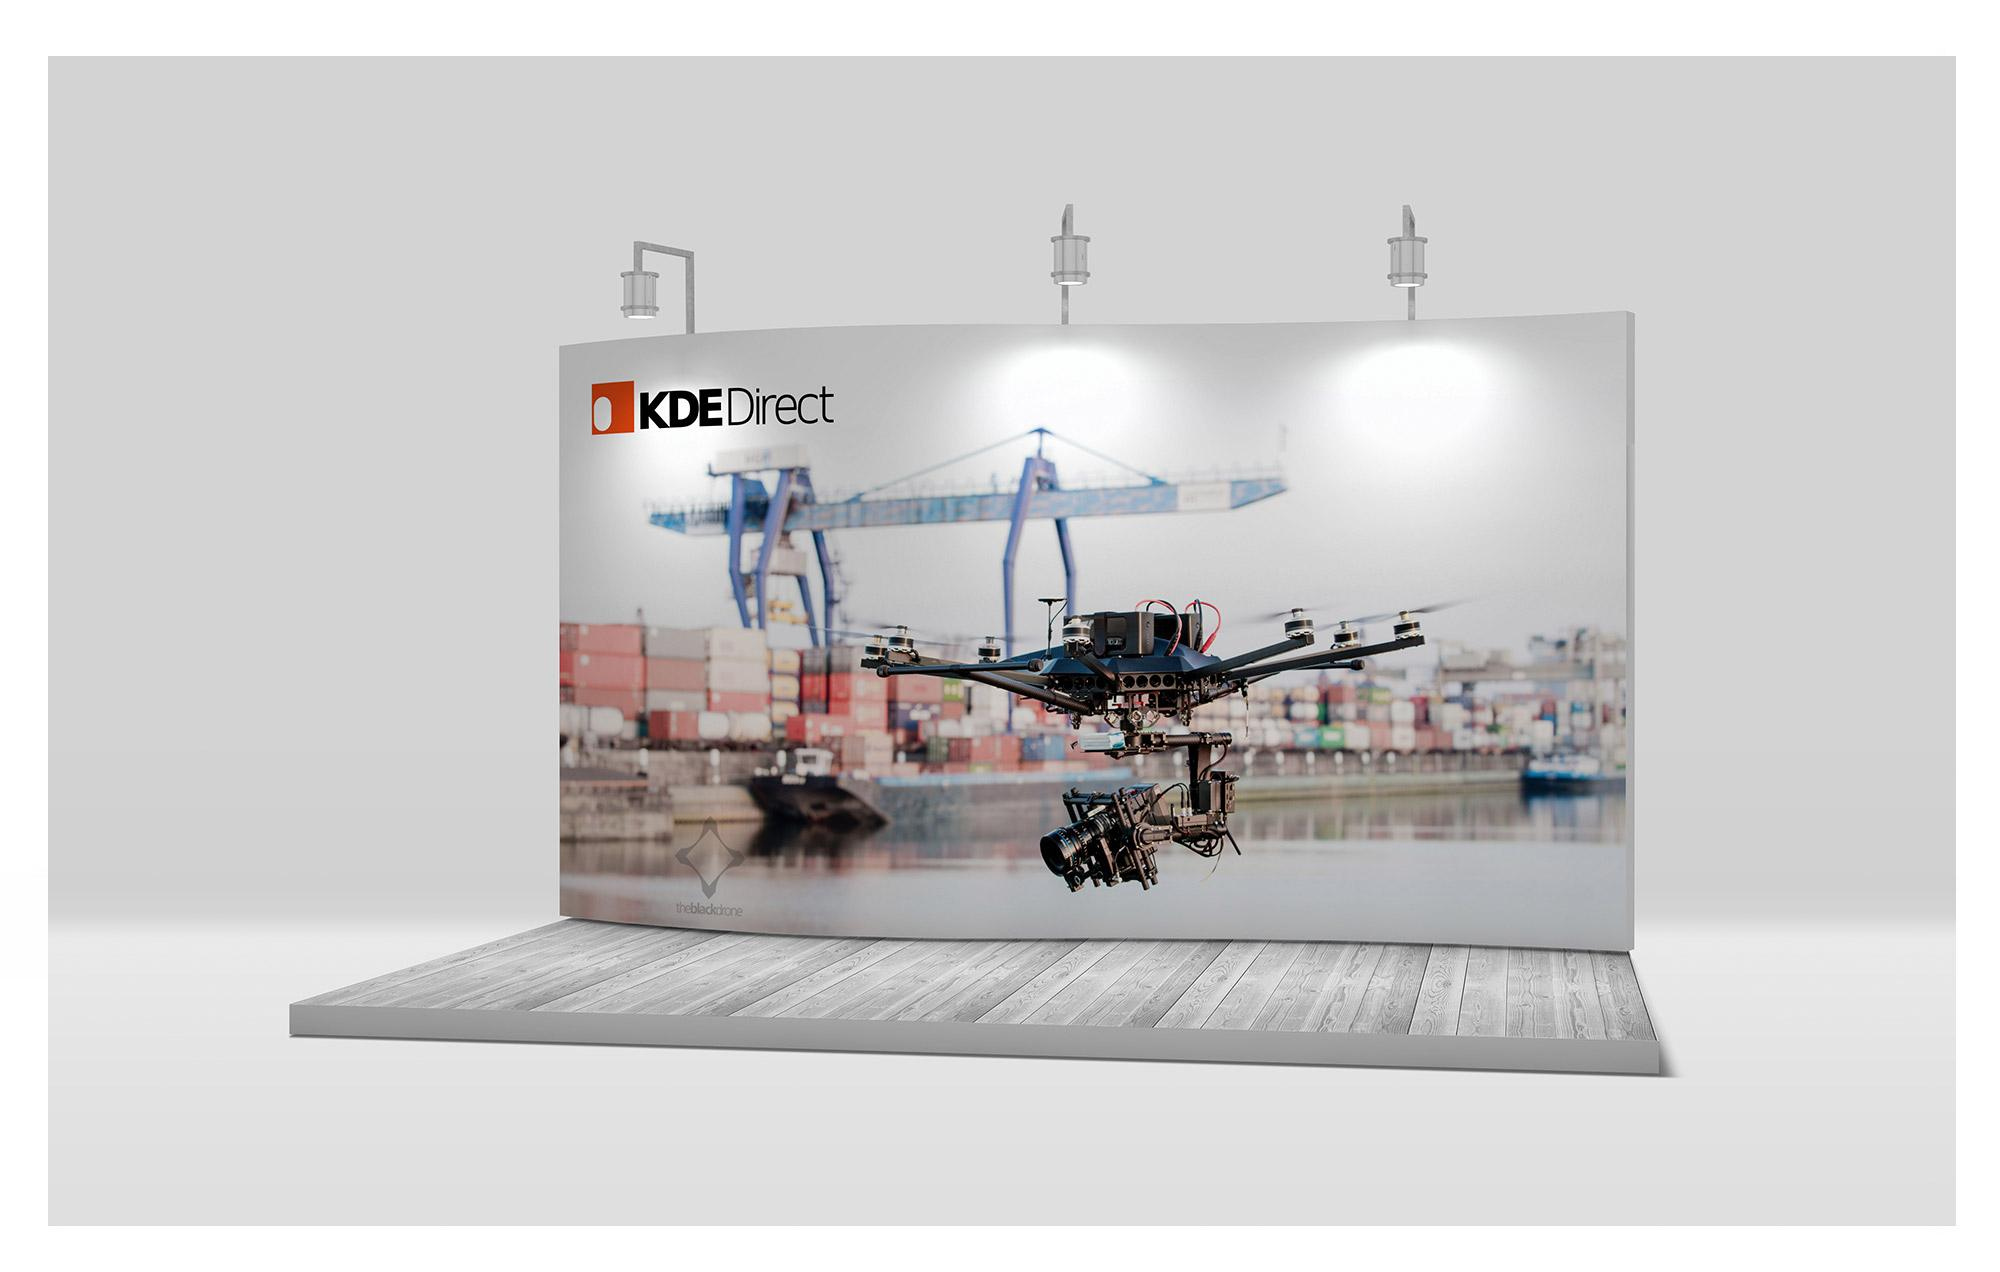 kde-direct-banner-design@2x